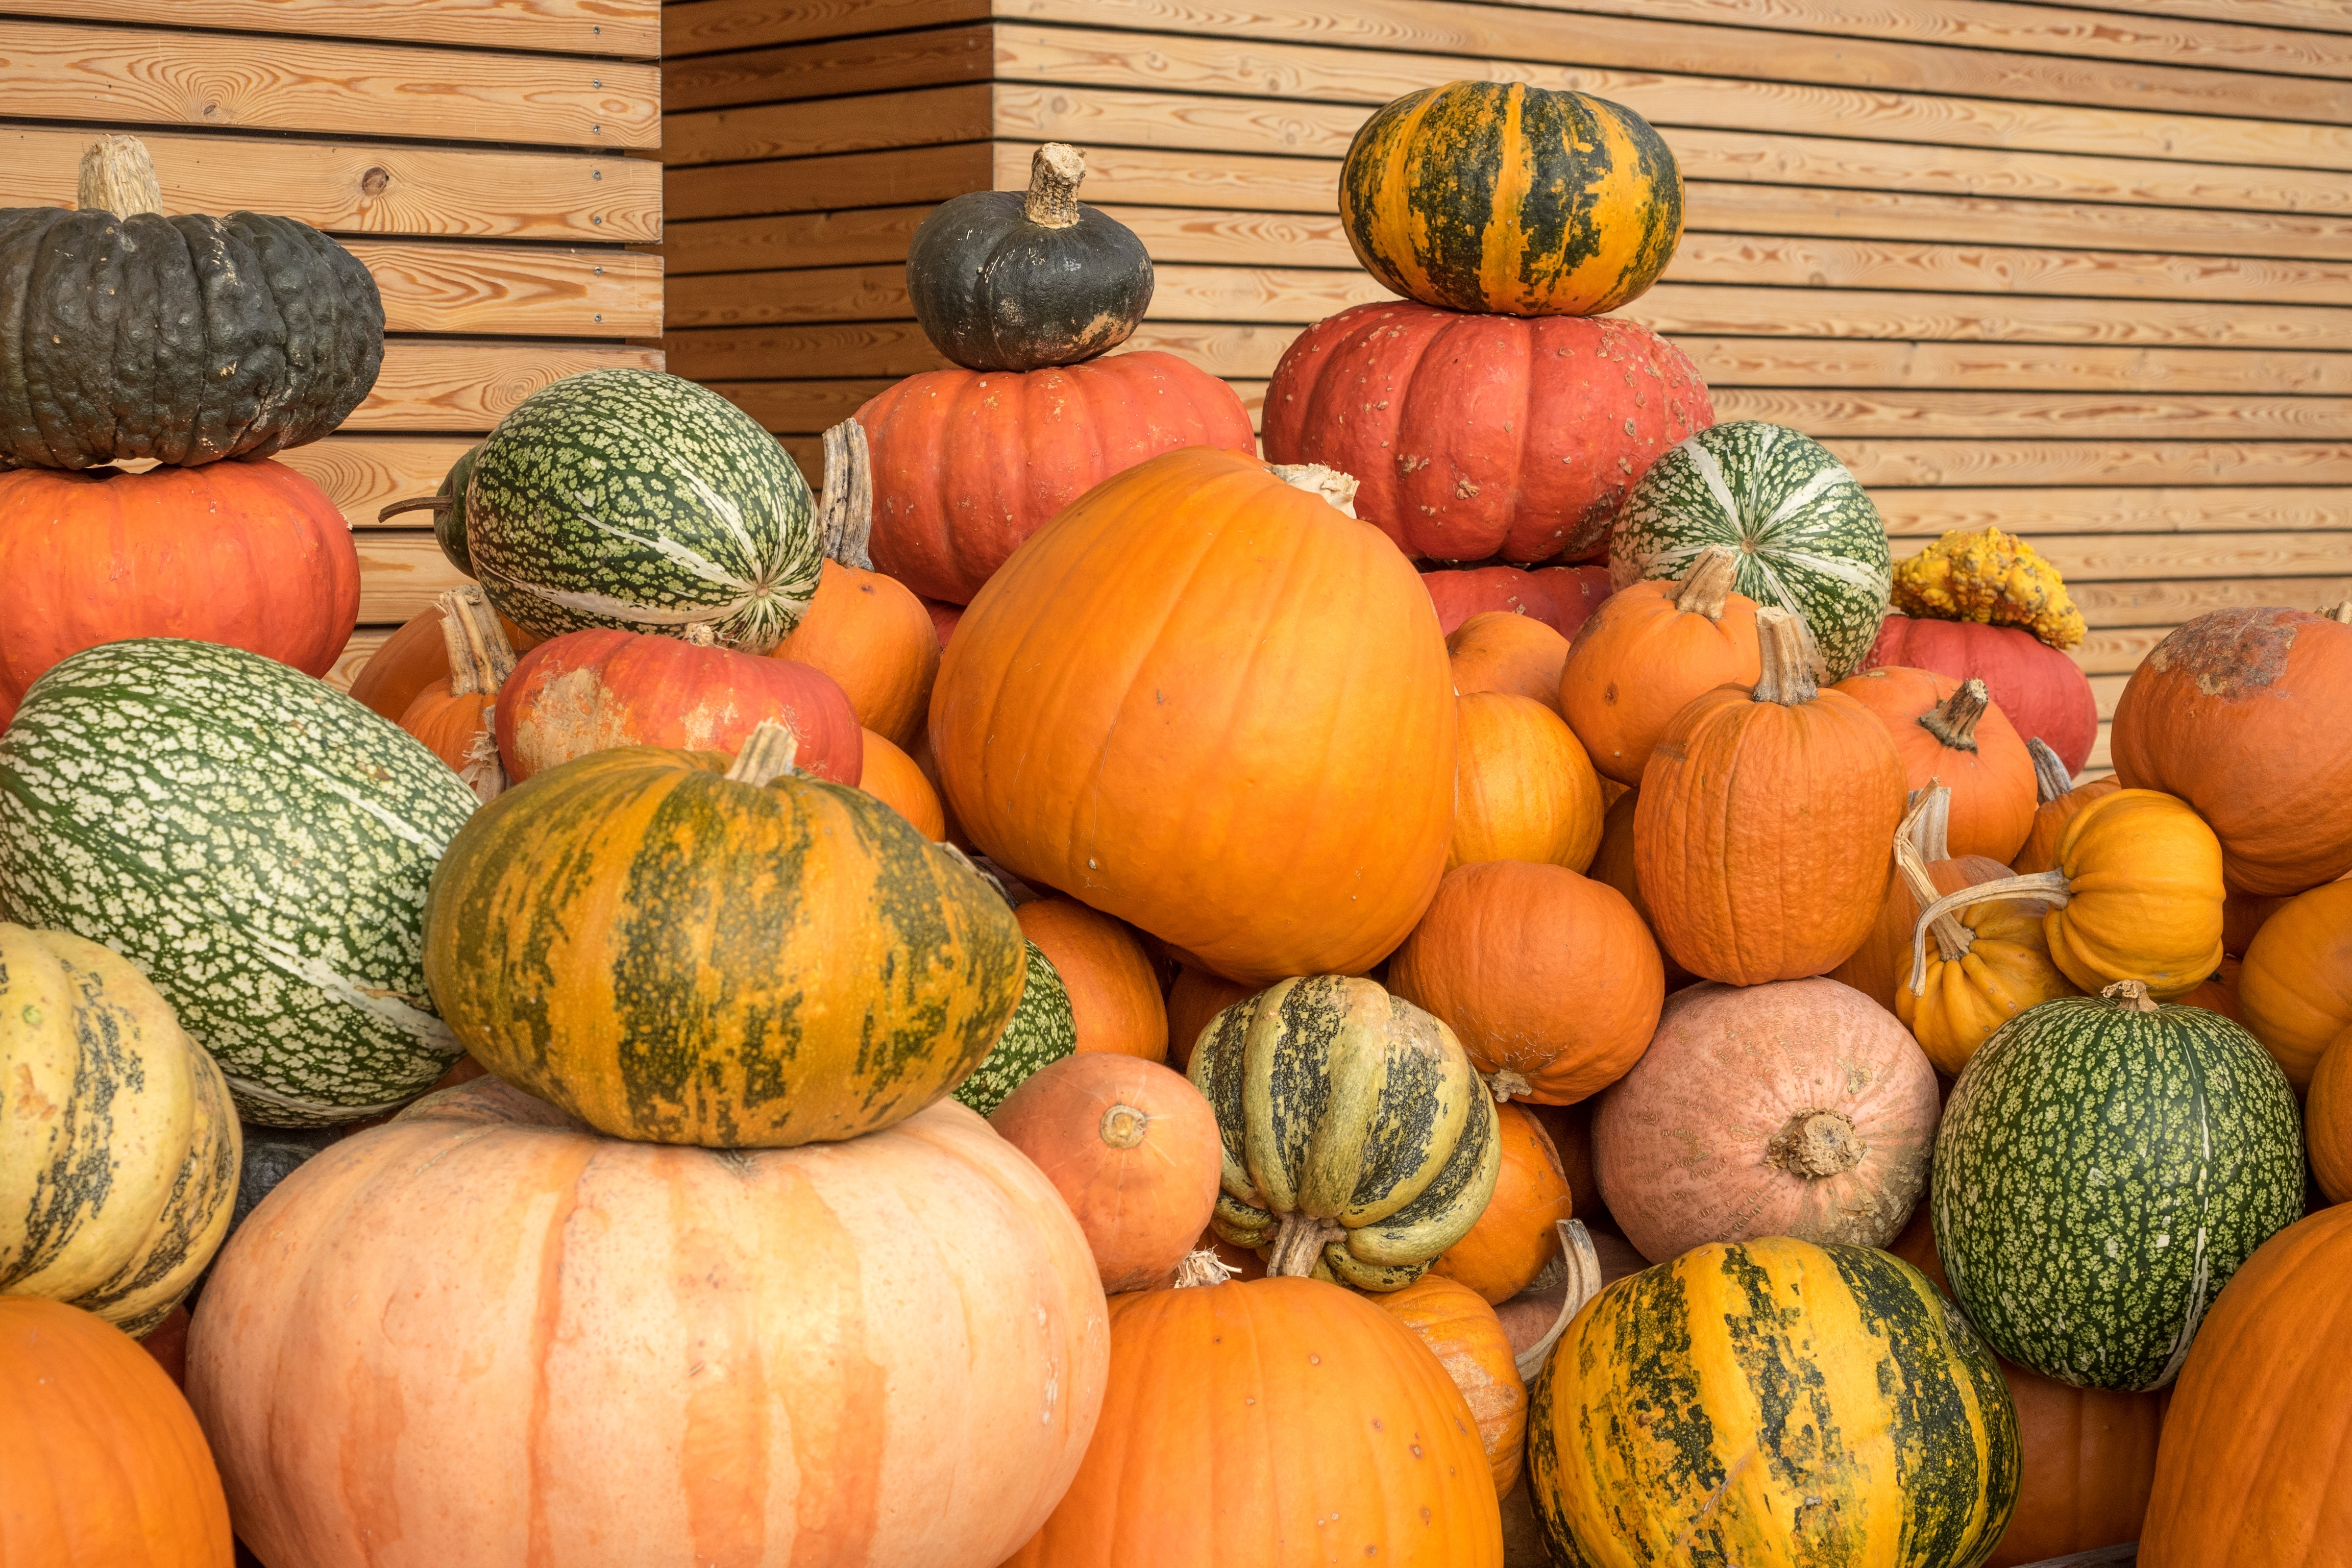 Pictures of different colored pumpkins